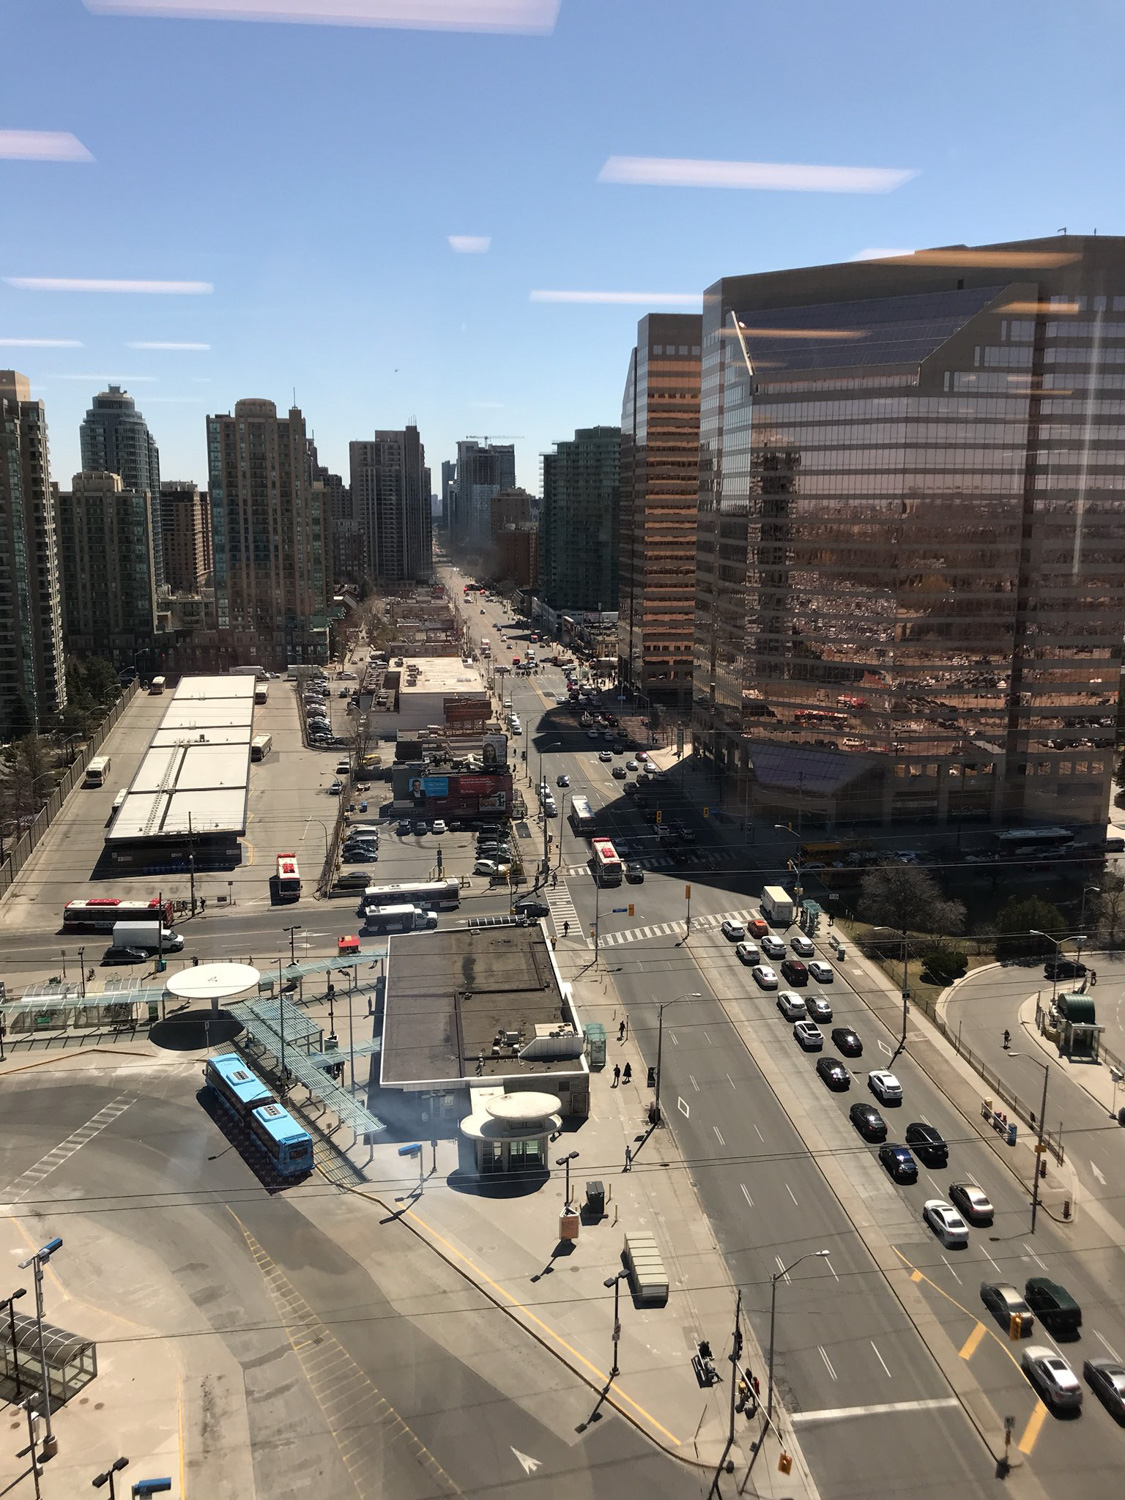 """<div class=""""meta image-caption""""><div class=""""origin-logo origin-image none""""><span>none</span></div><span class=""""caption-text"""">A white van hit pedestrians in Toronto,Canada, killing 9 people and injuring 16 more. (Jiacheng Huang)</span></div>"""